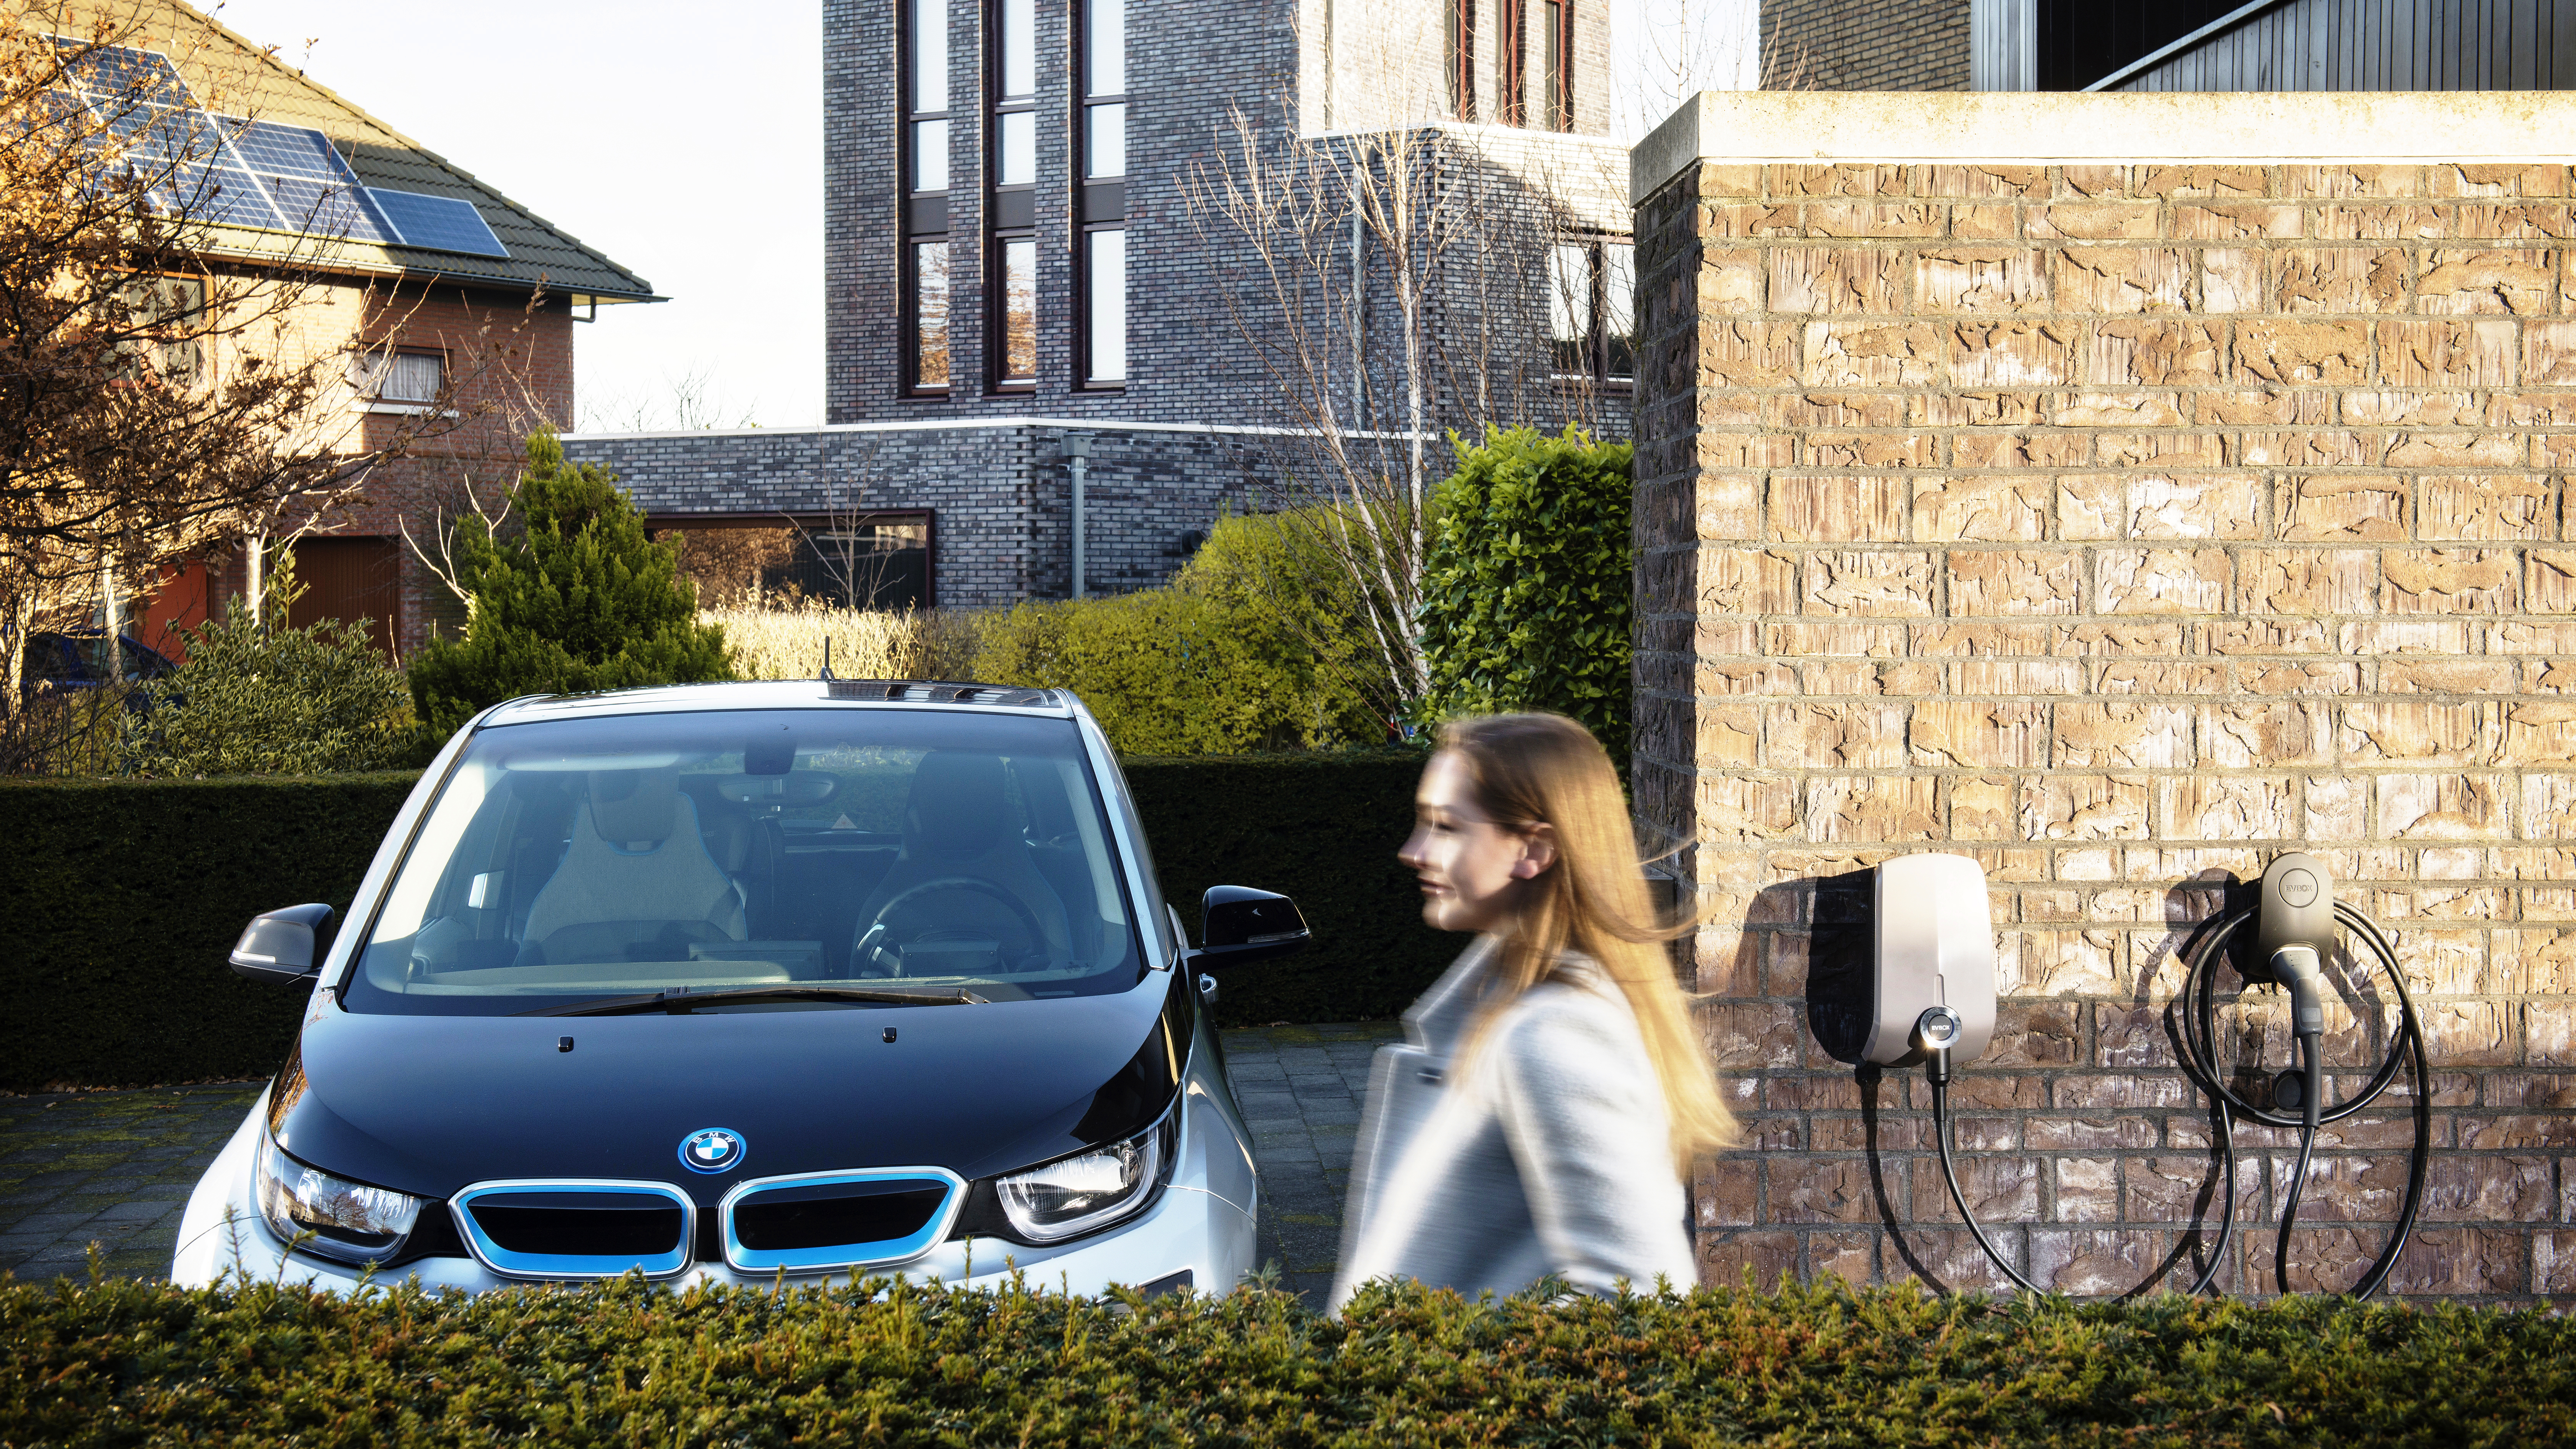 A woman passes a residential parking spot where an electric vehicle is parked next to a home charger on the wall.